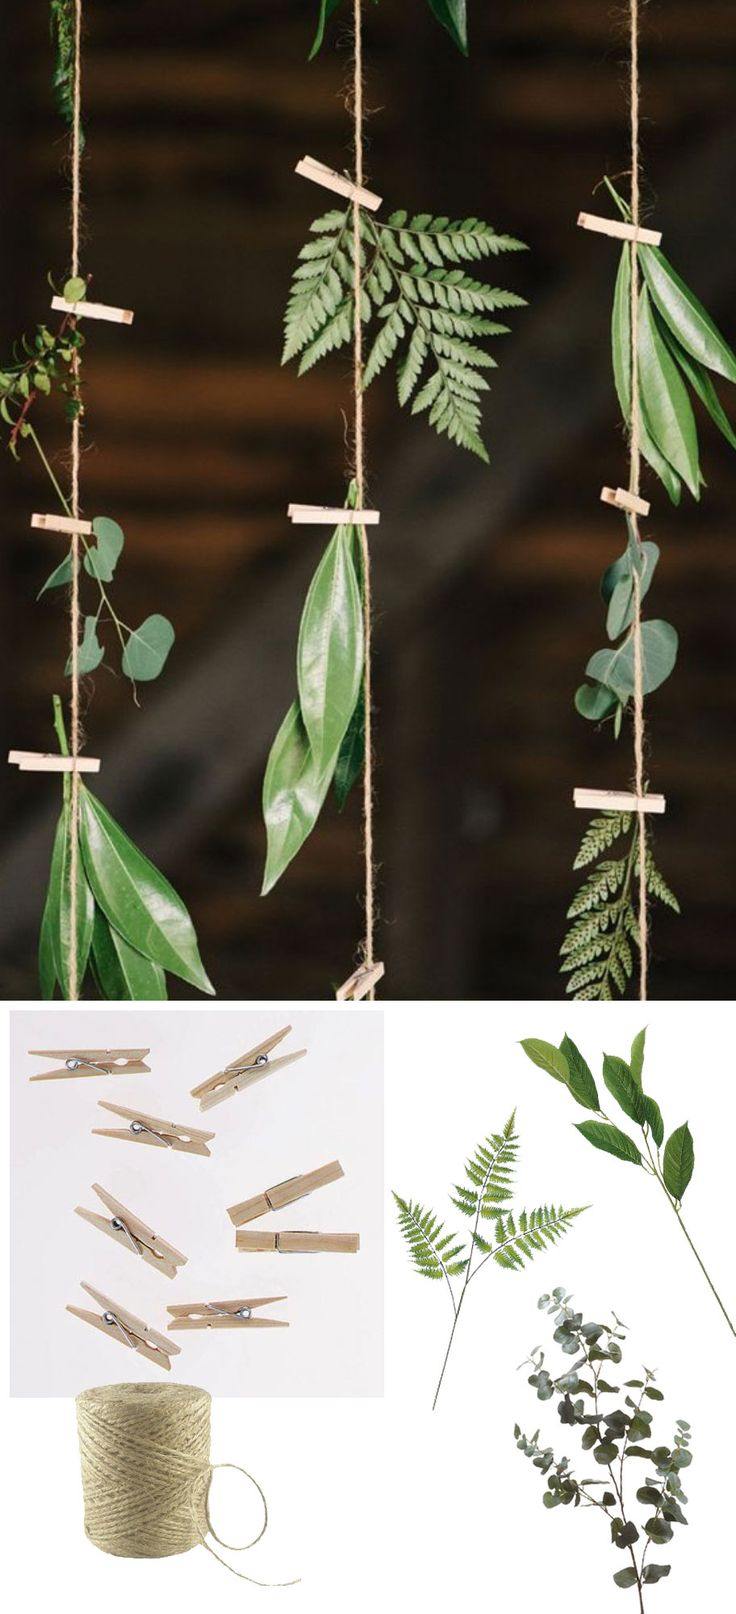 DIY greenery hanging backdrop with twine, clothespins, and faux greenery from afloral.com #diywedding Photo Inspiration Via Ruffled